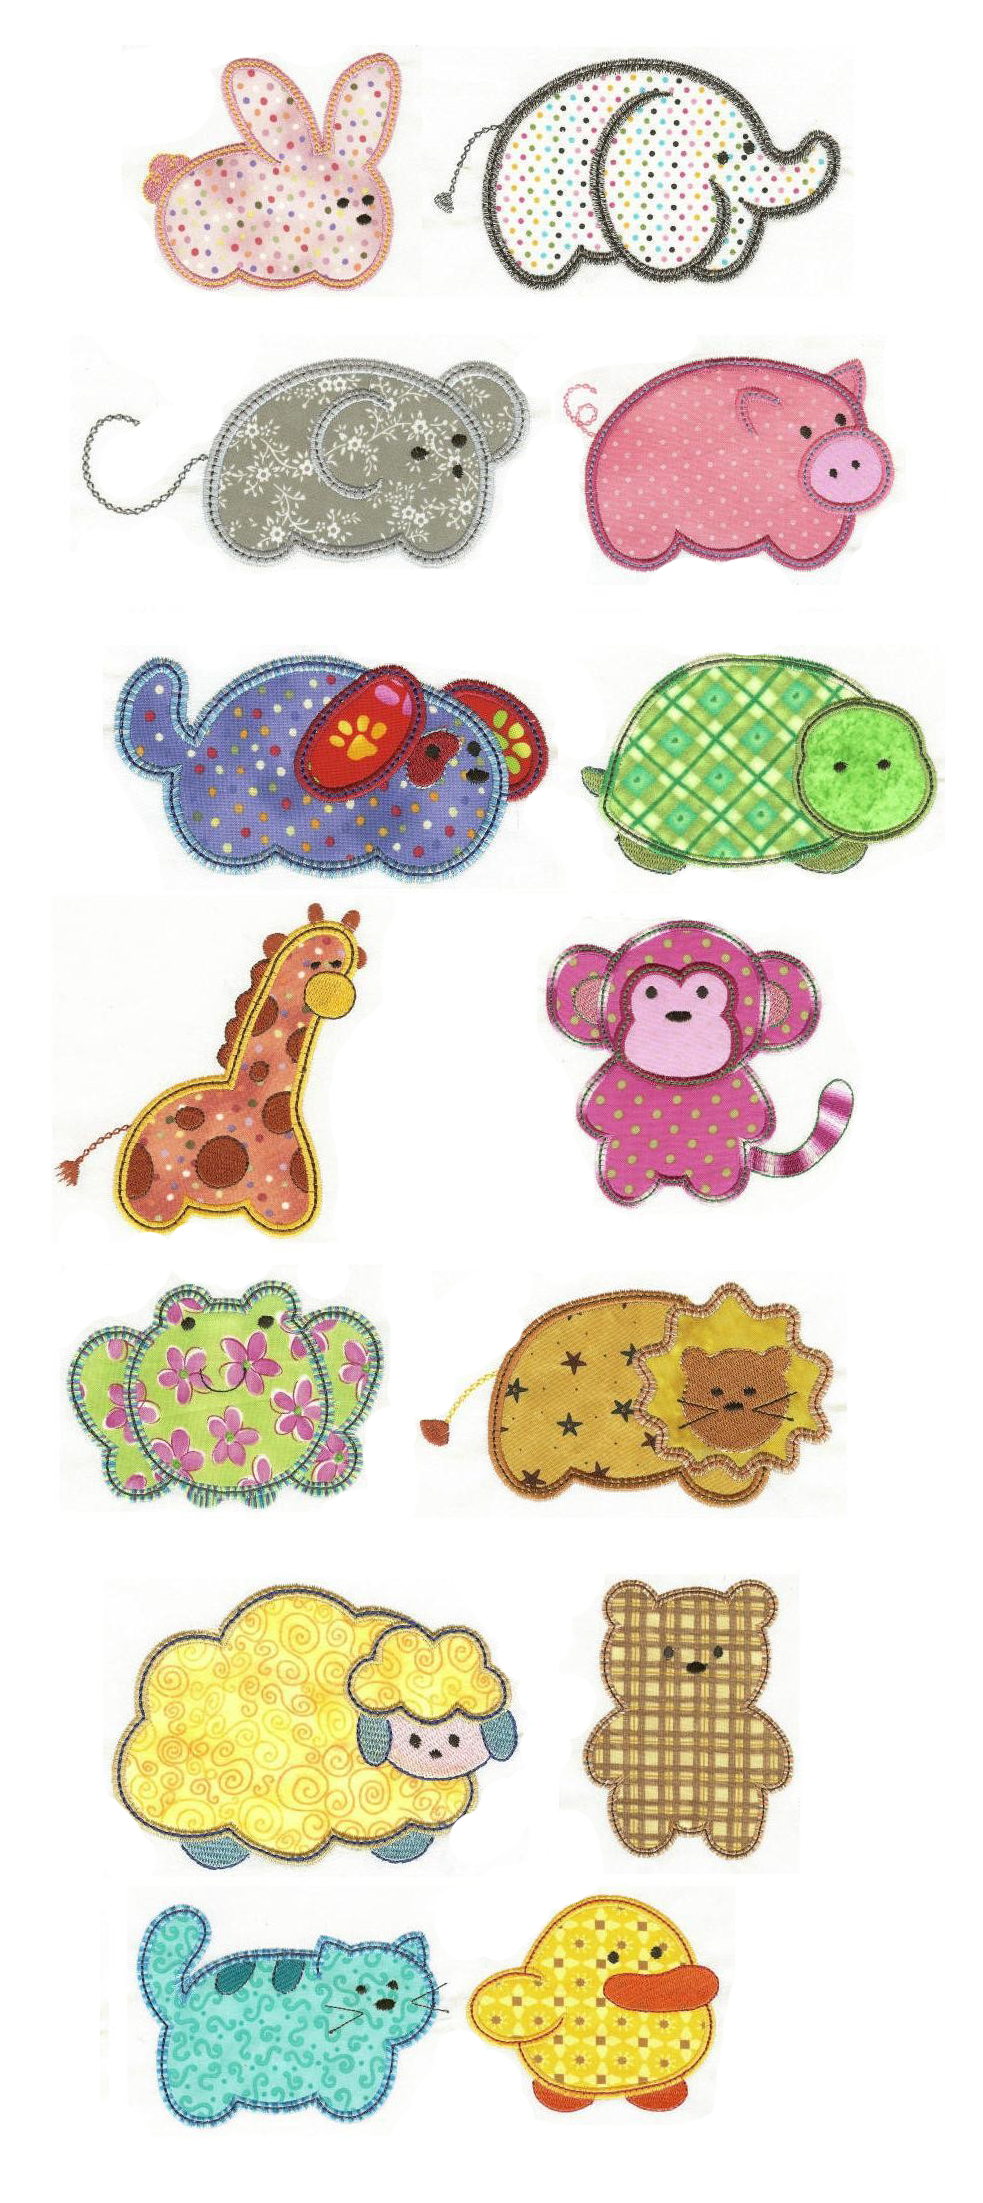 Simply Sweet Applique Animals design set available for instant